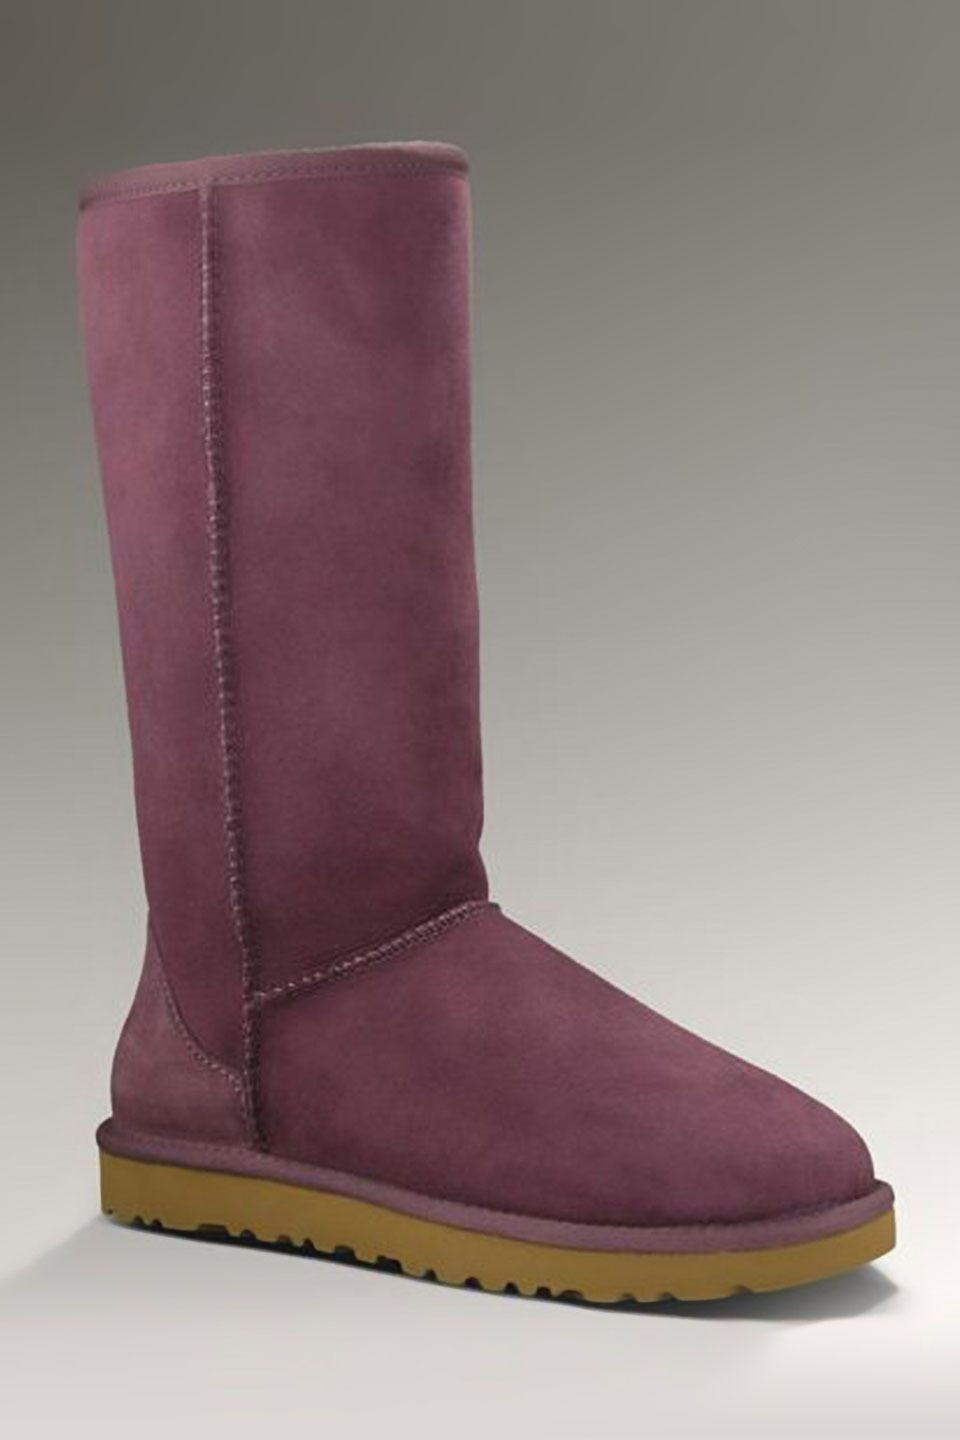 253b1b6c7bc Ugg Classic Tall Boot In Plum. | Shoe Shine | Ugg boots sale, Ugg ...